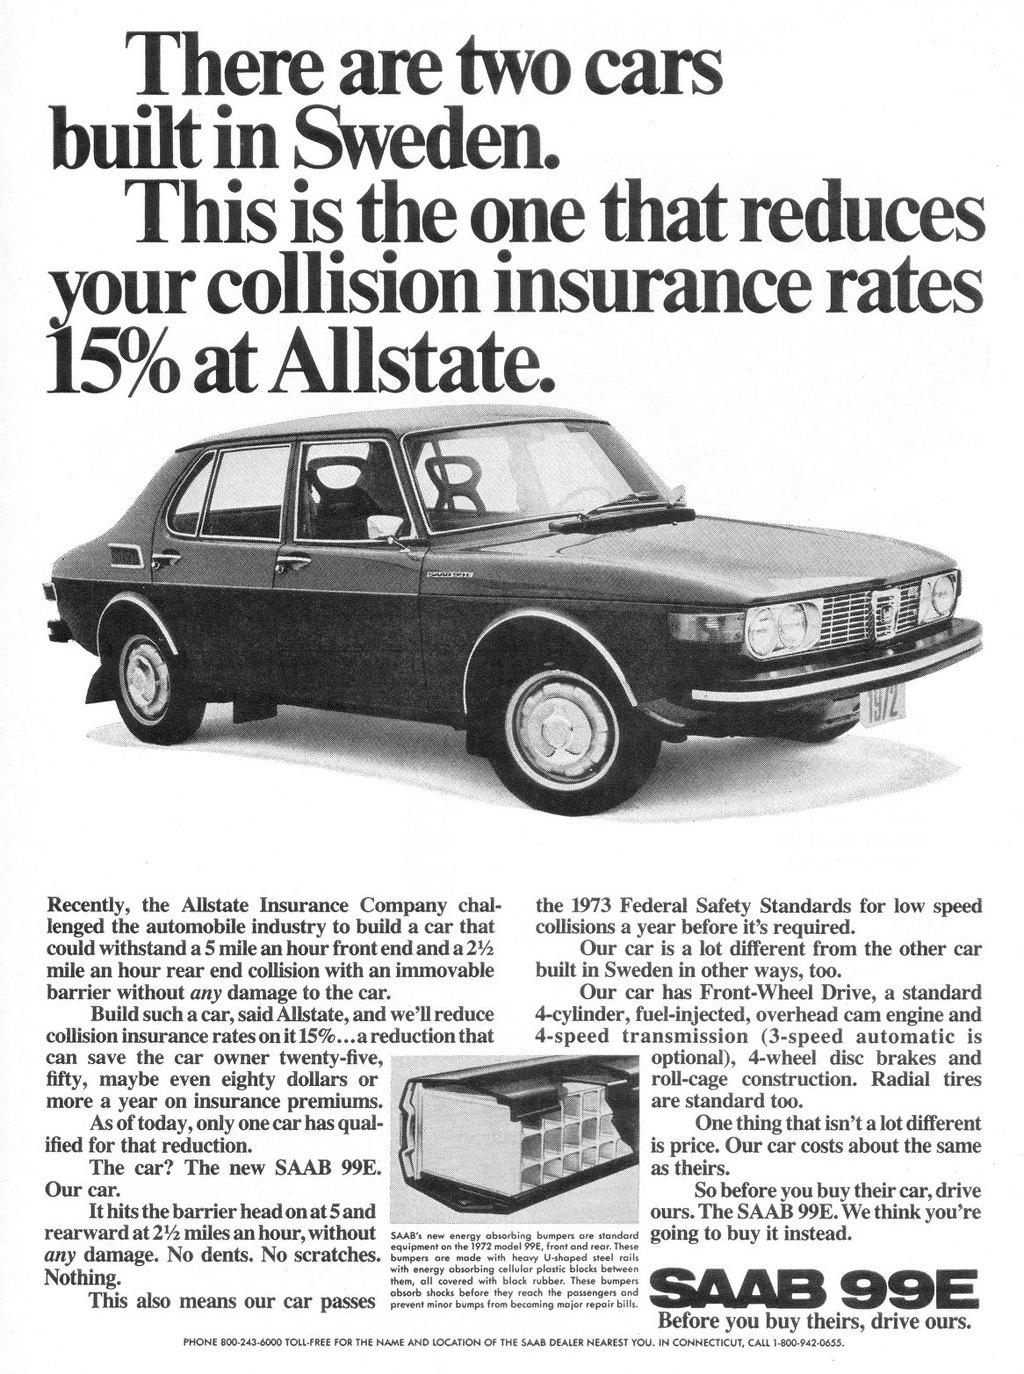 There are two cars built in Sweden. This is the one that reduces your collision insurance rates 15% at Allstate.   Recently, the Allstate Insurance Company chal-lenged the automobile industry to build a car that could withstand a 5 mile an hour front end and a 21/2 mile an hour rear end collision with an immovable barrier without any damage to the car. Build such a car, said Allstate, and we'll reduce collision insurance rates on it 15%...a reduction that can save the car owner twenty-five, fifty, maybe even eighty dollars or more a year on insurance premiums. As of today, only one car has qual-ified for that reduction. The car? The new SAAB 99E. Our car. It hits the barrier head on at 5 and rearward at 21/2 miles an hour, without any damage. No dents. No scratches. Nothing. This also means our car passes  the 1973 Federal Safety Standards for low speed collisions a year before it's required. Our car is a lot different from the other car built in Sweden in other ways, too. Our car has Front-Wheel Drive, a standard 4-cylinder, fuel-injected, overhead cam engine and 4-speed transmission (3-speed automatic is optional), 4-wheel disc brakes and roll-cage construction. Radial tires are standard too. One thing that isn't a lot different is price. Our car costs about the same as theirs. So before you buy their car, drive ours. The SAAB 99E. We think you're going to buy it instead.   SAAB'. new energy absorbing bumpers are standard equipment on the 1972 model 99E, front and rear. These bumpers are made with heavy U-shaped steel roils with energy absorbing cellular plastic blocks between them, all covered with block rubber. These bumpers absorb shocks before they reach the passengers and prevent minor bumps from becoming major repair bills.  SAAB 99E  Before you buy theirs, drive ours.  PHONE 800.243.6000 TOIL-FREE FOR THE NAME AND LOCATION OF THE SAAB DEALER NEAREST YOU. IN CONNECTICUT, CALL 1.800.942-0655.